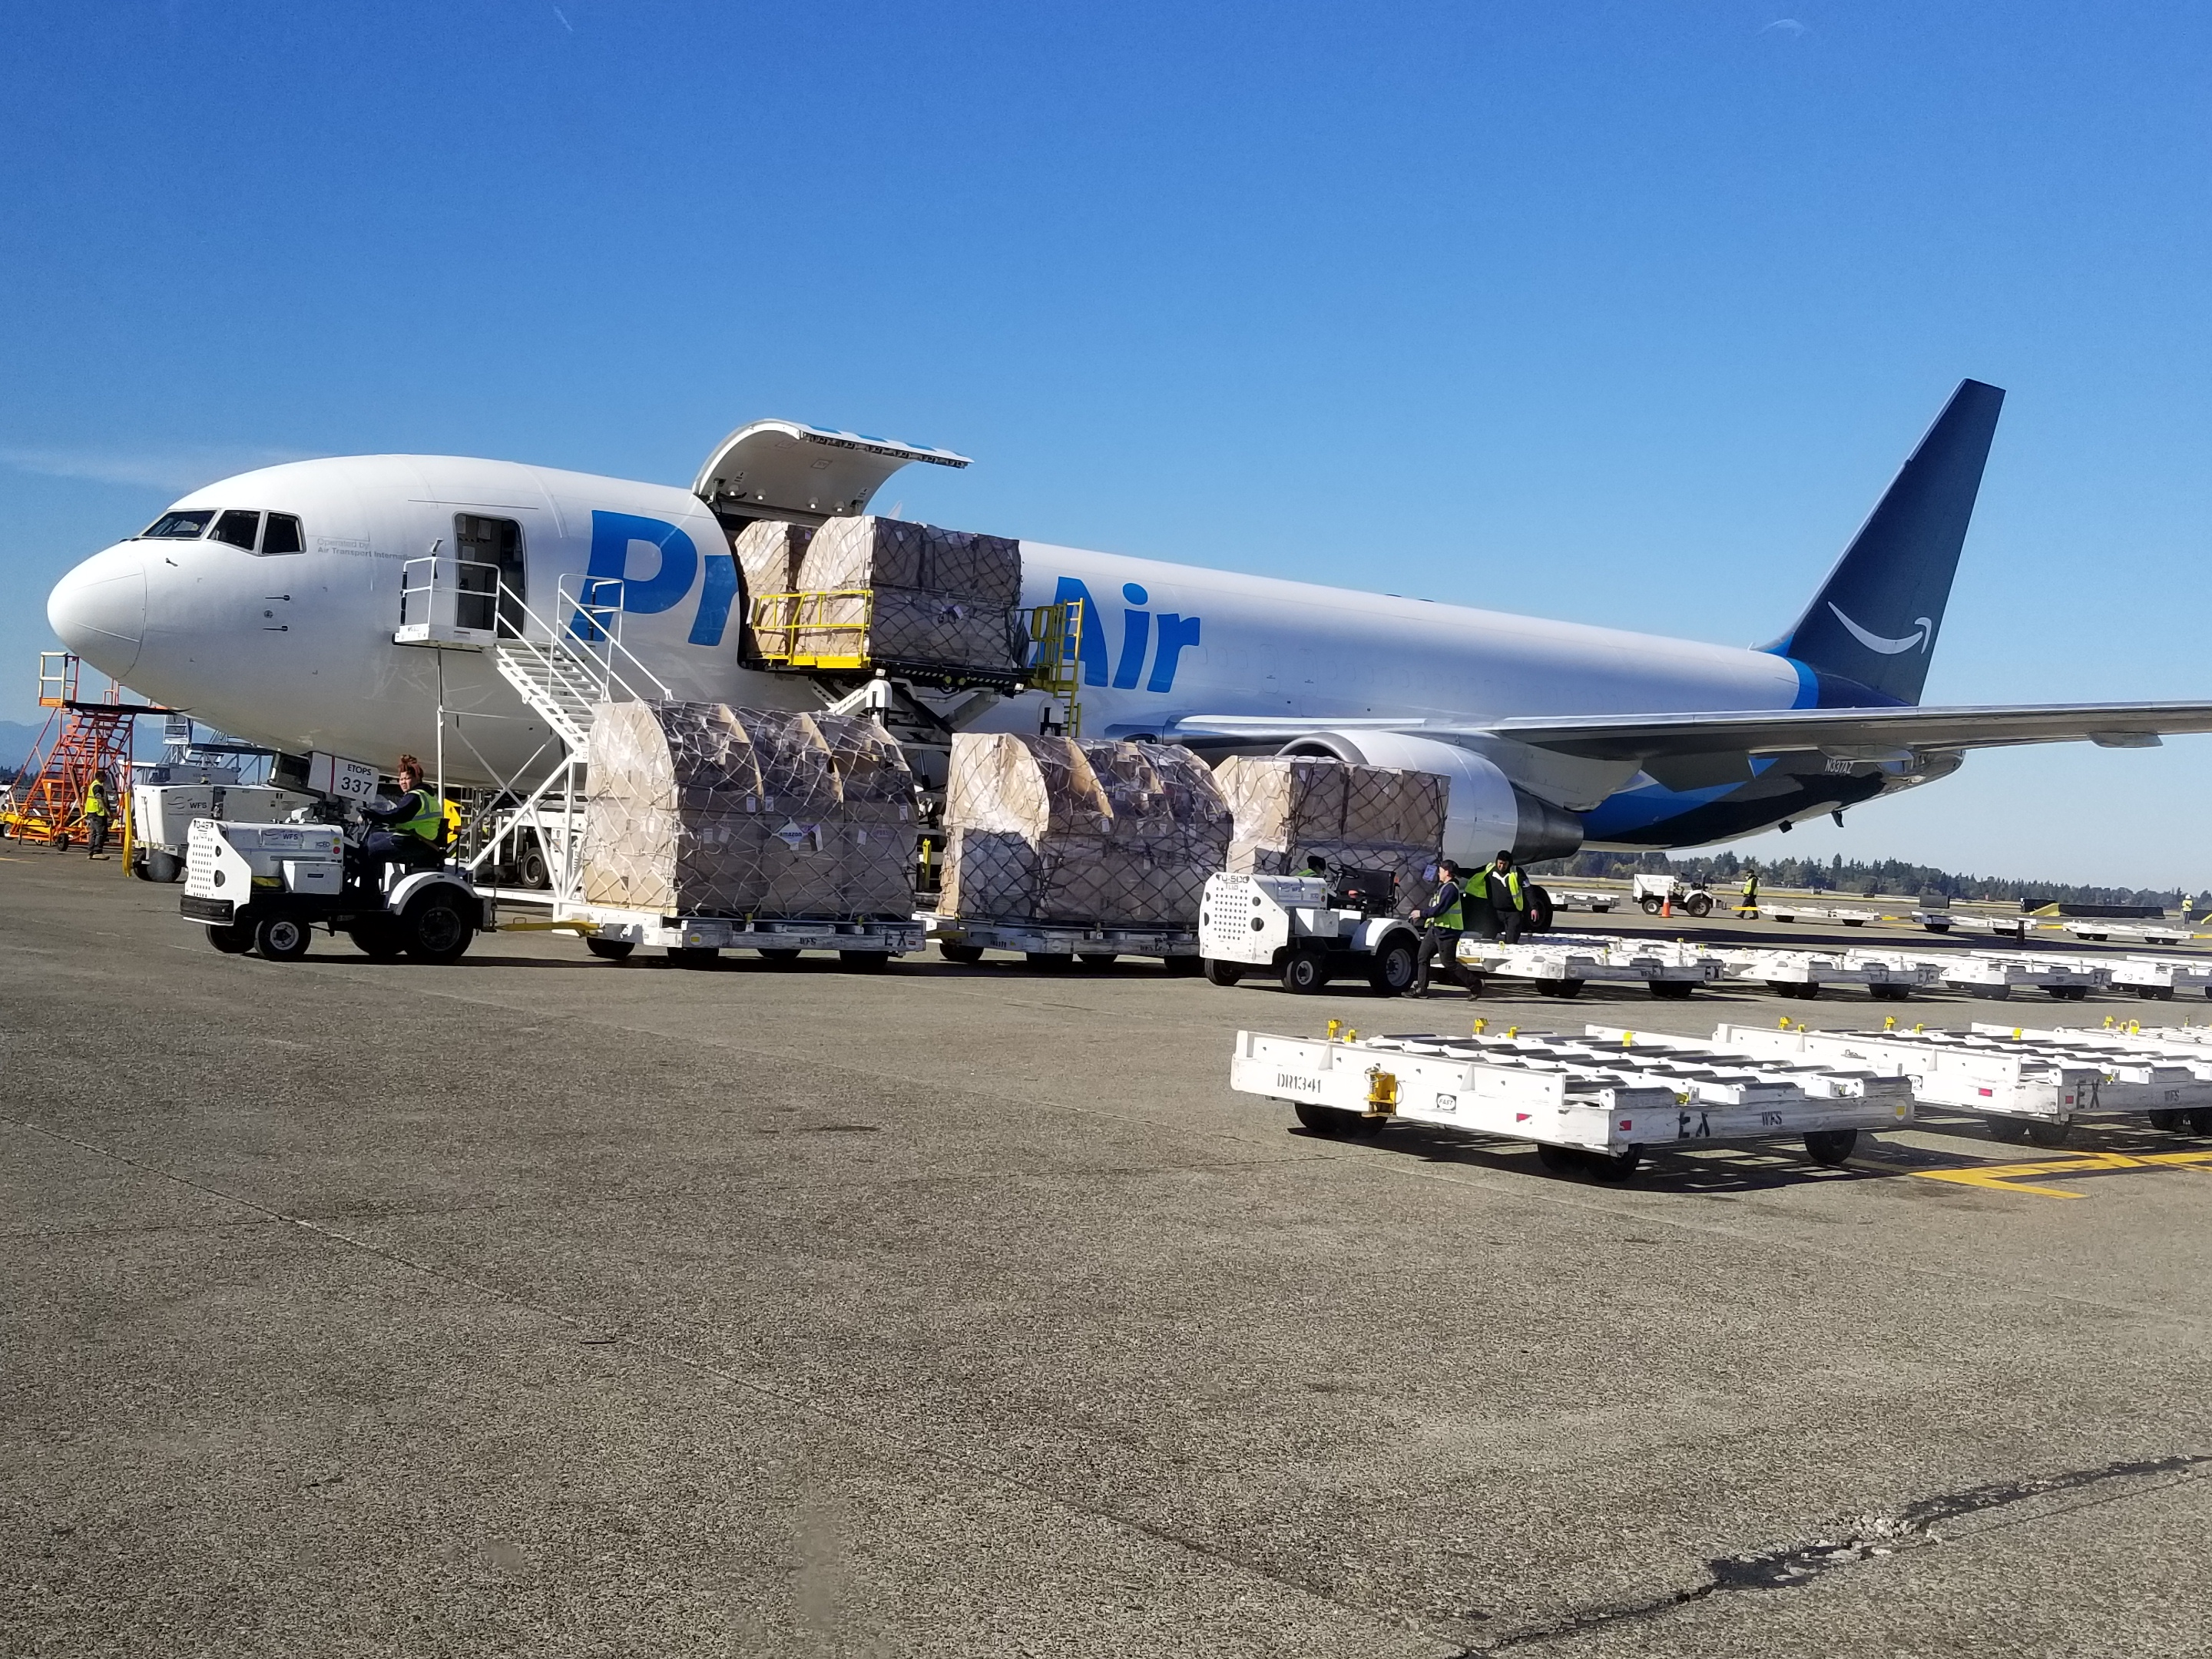 Amazon Air fleet to expand to 50 freighters  Air Cargo World